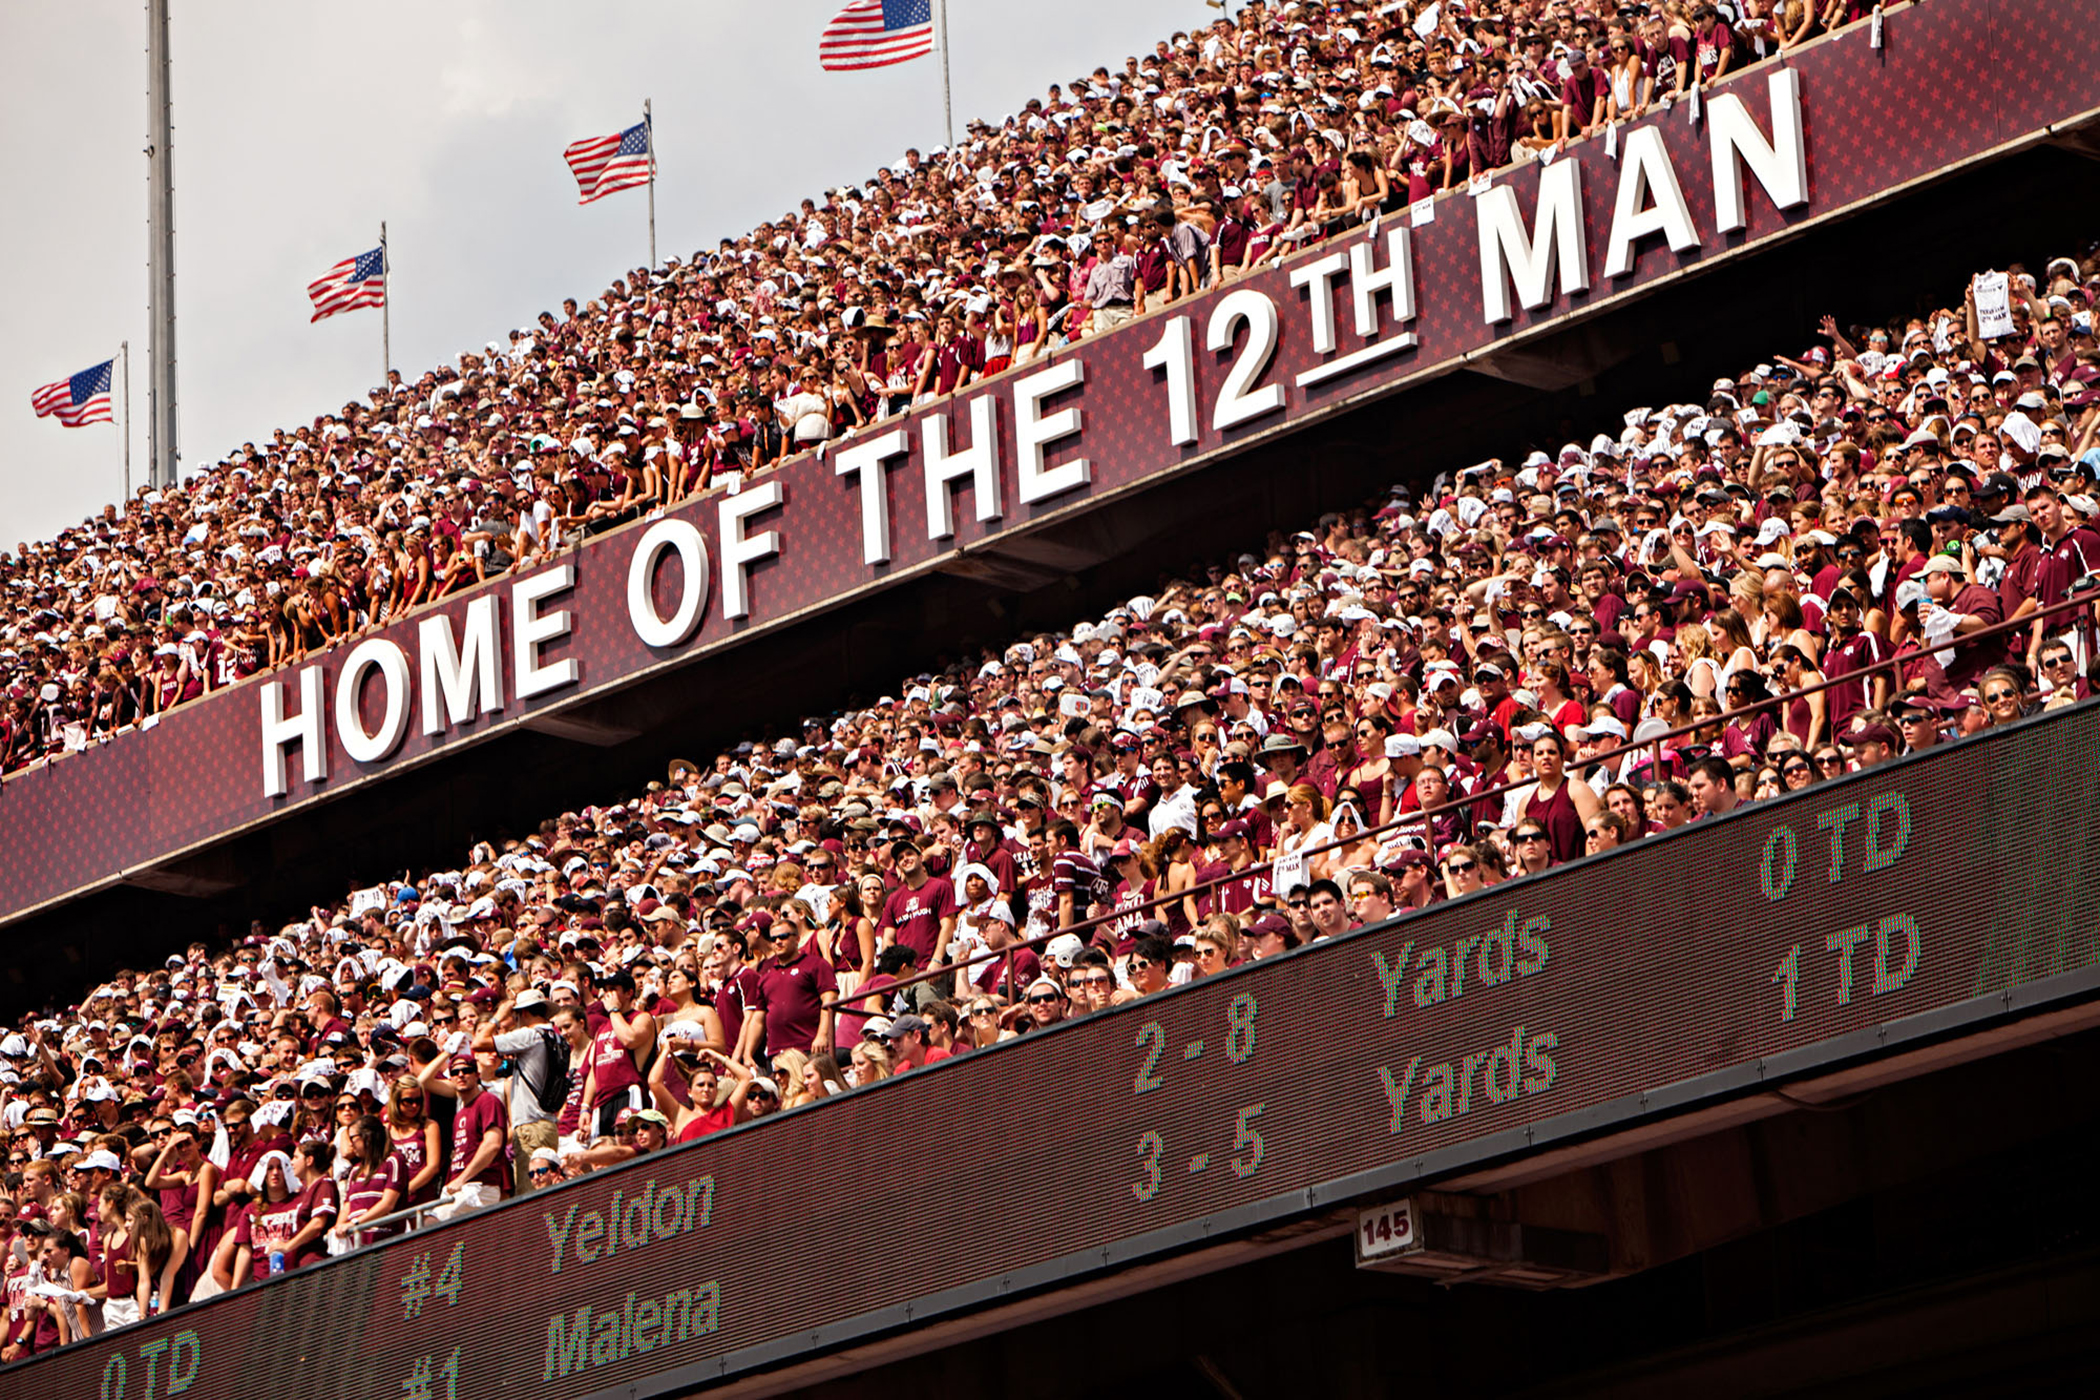 Texas A&M University shows off its trademarked slogan.